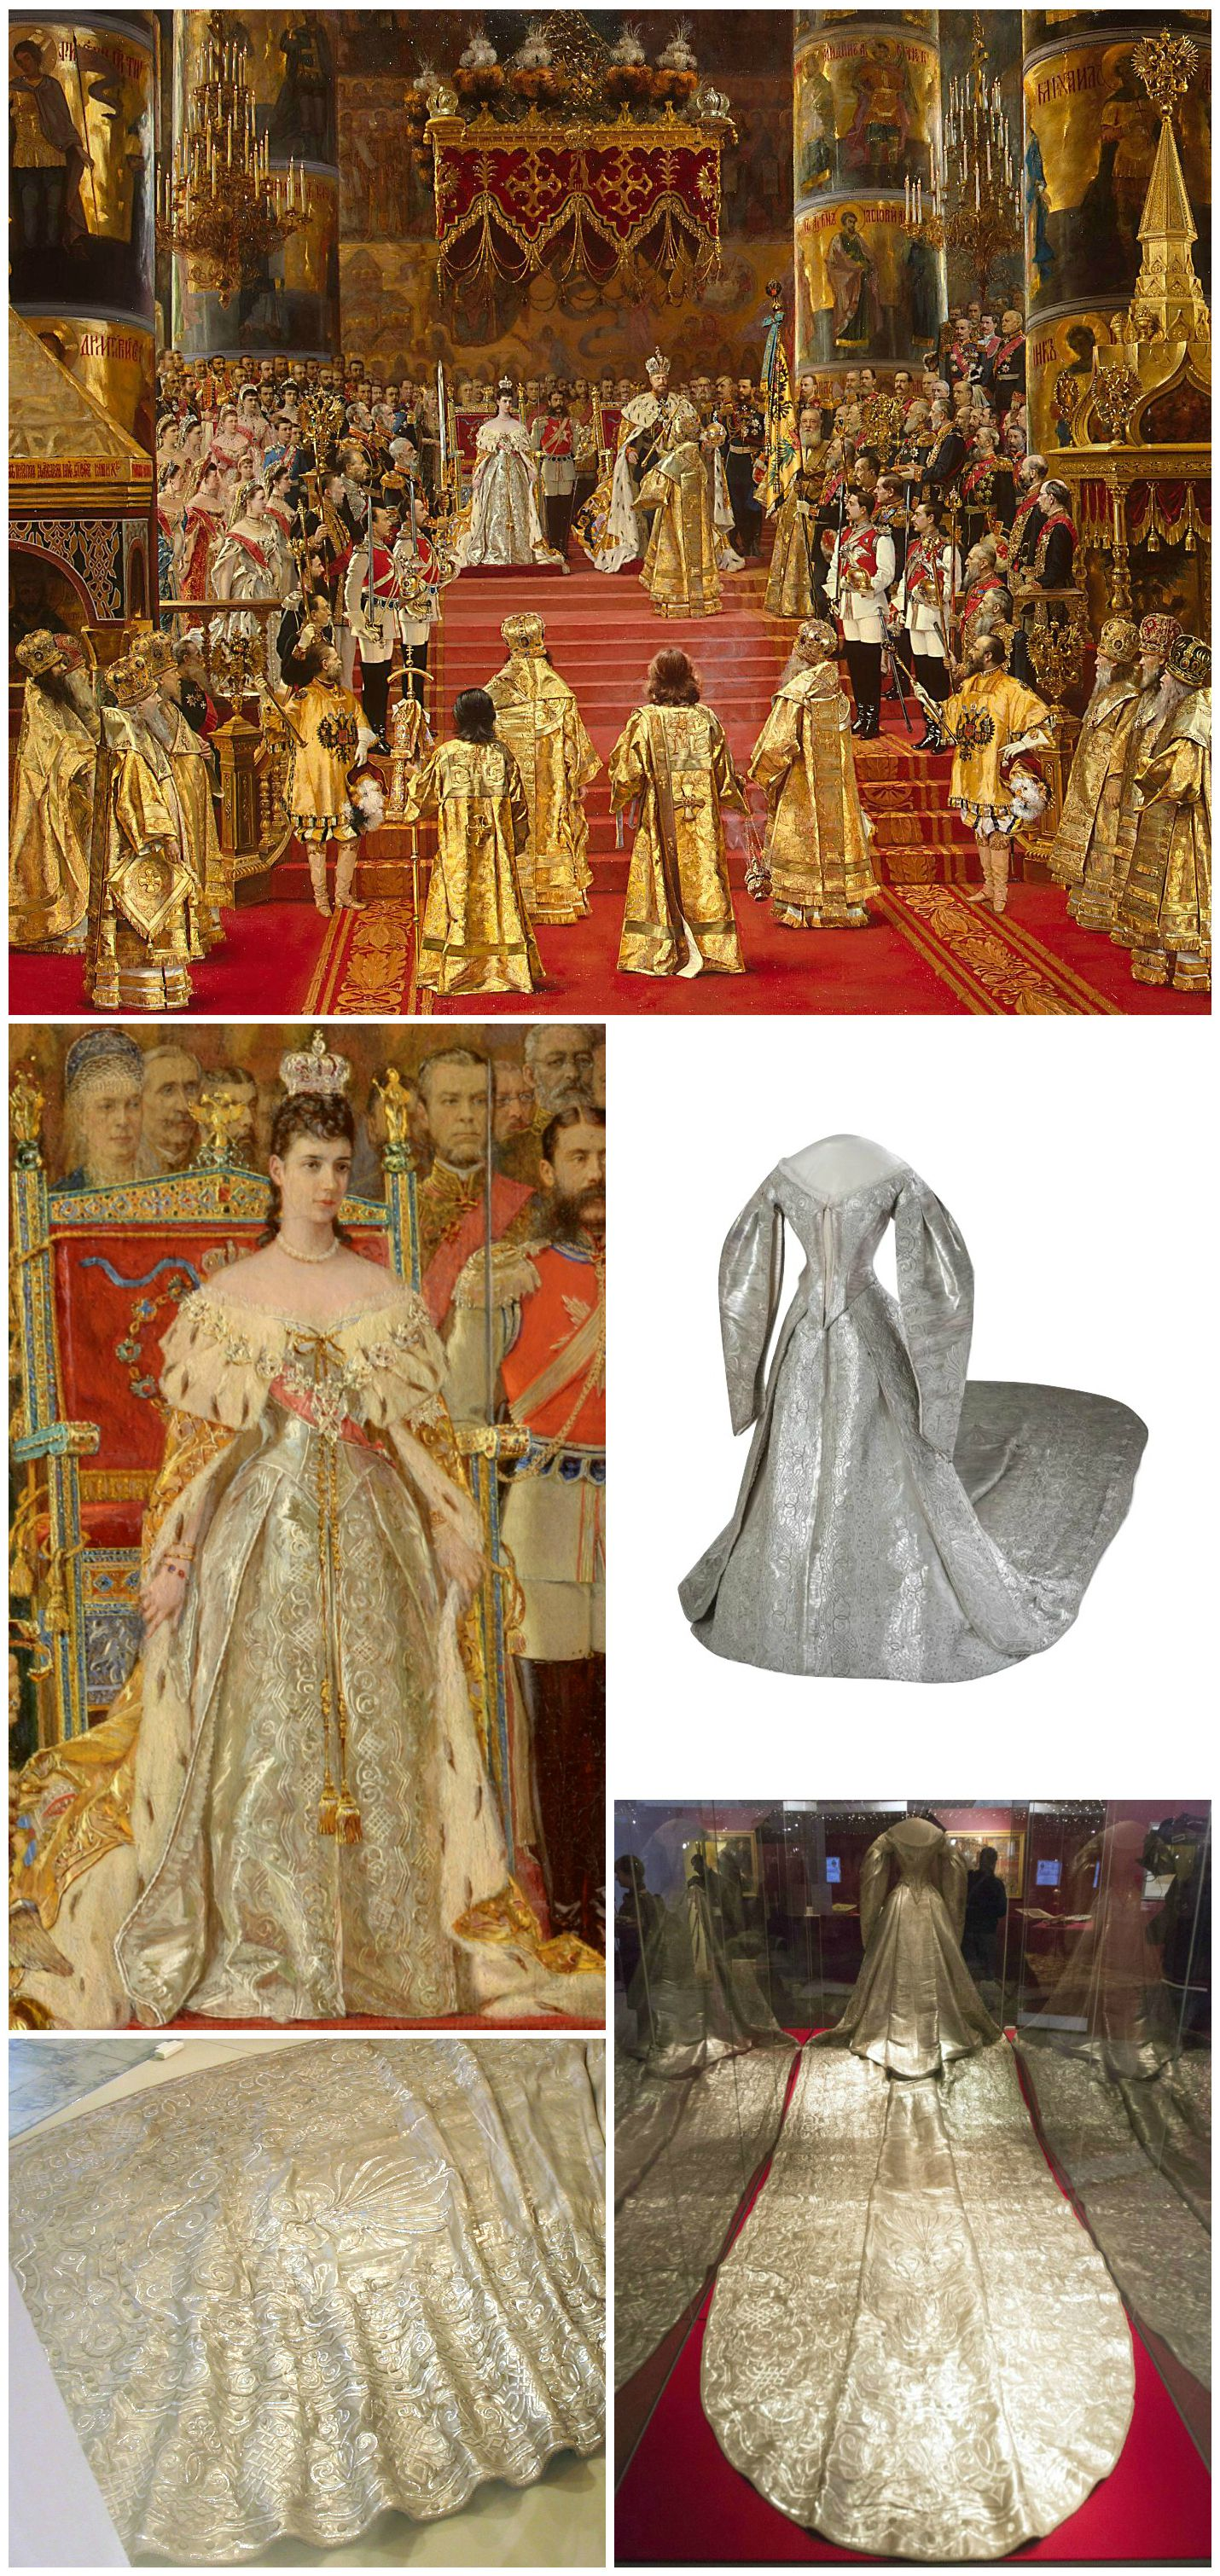 """Coronation dress of Empress Maria Feodorovna, Studio of Izambard Chanceau, embroidery studio of A. Laman, St. Petersburg, 1883. Collection of Moscow Kremlin Museums. Photos via: Moscow Kremlin Museums (three-quarter frontal view); m24.ru (back view); madoa on Flickr (detail of train). Maria Feodorovna can be seen wearing the dress in Georges Becker's 1888 painting, """"The Coronation of Emperor Alexander III and Empress Maria Feodorovna."""" Collection of the State Hermitage Museum, St…"""